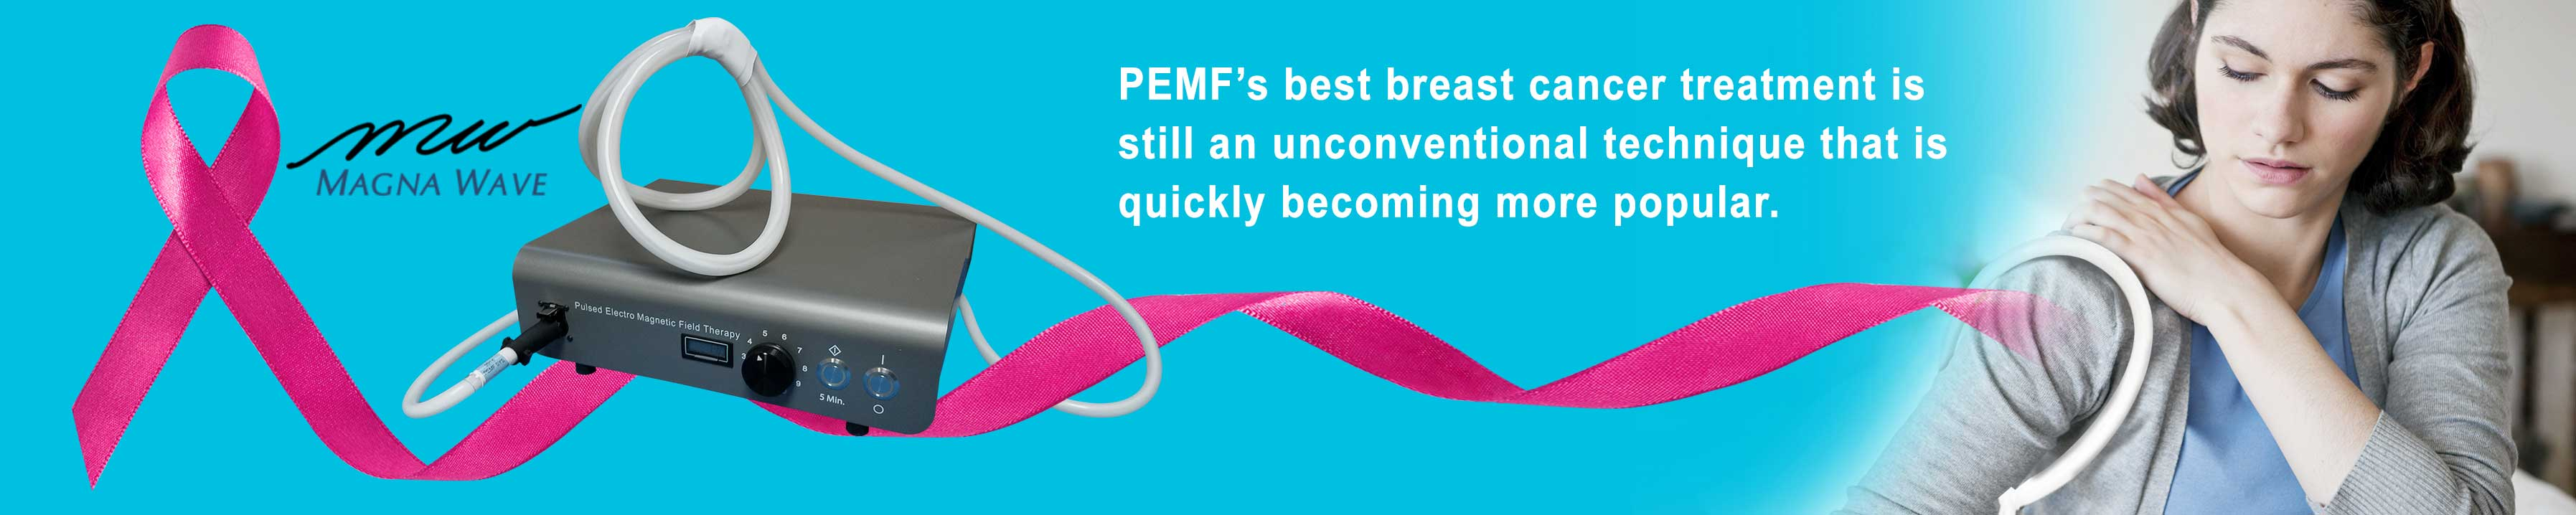 PEMF's best breast cancer treatment is still an unconventional technique that is quickly becoming more popular.